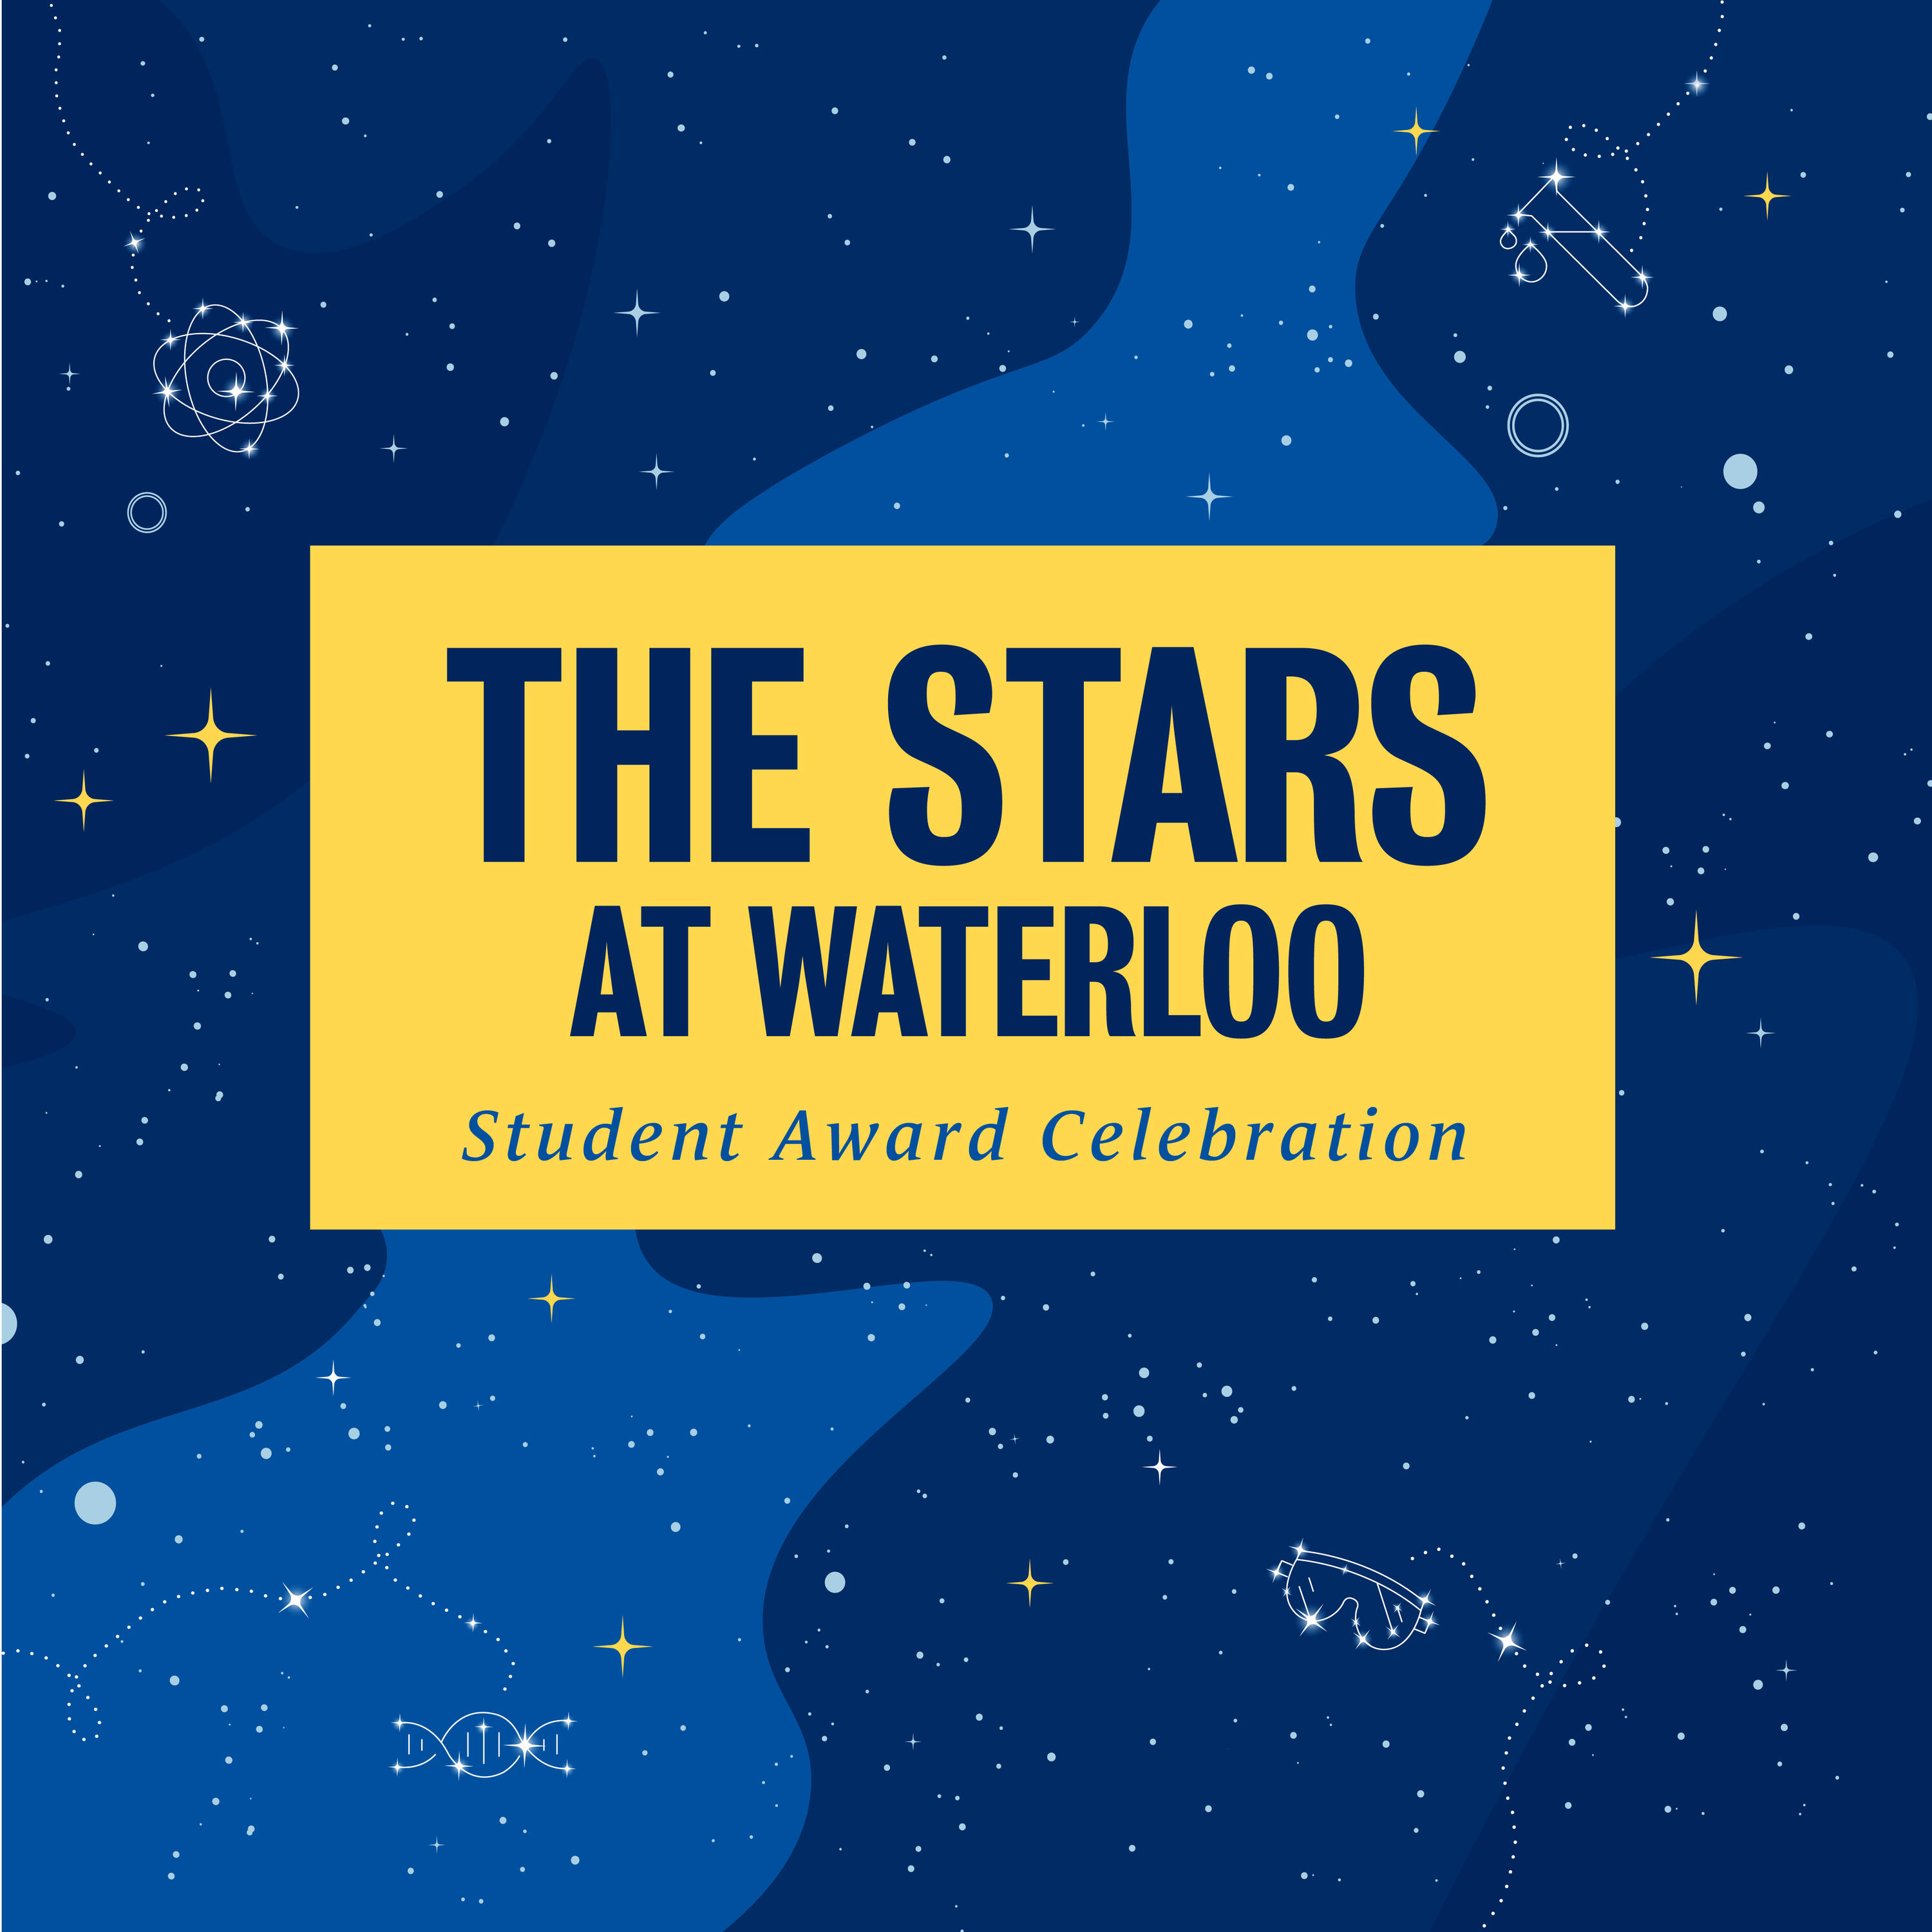 stars at waterloo image